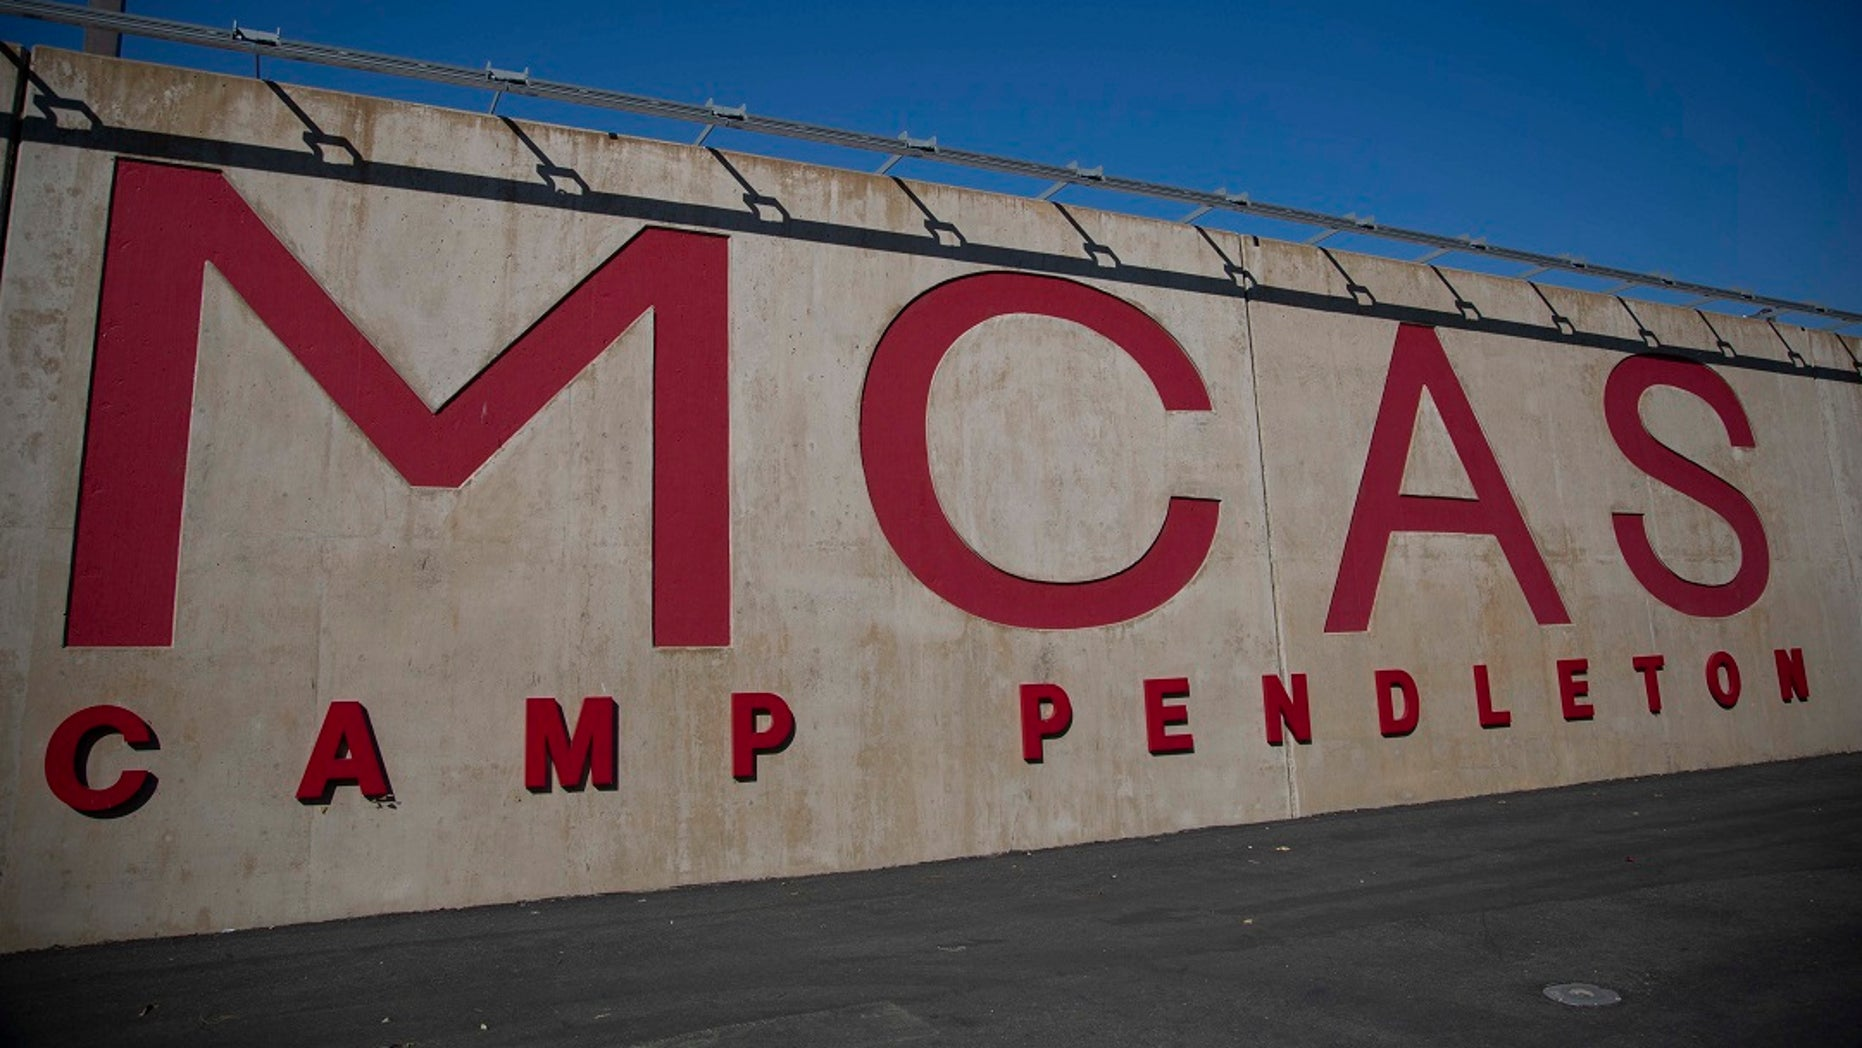 Marine Corps Air Station (MCAS) Camp Pendleton, California is seen Nov. 20, 2018. (U.S. Marine Corps photo by Cpl. Noah Rudash)